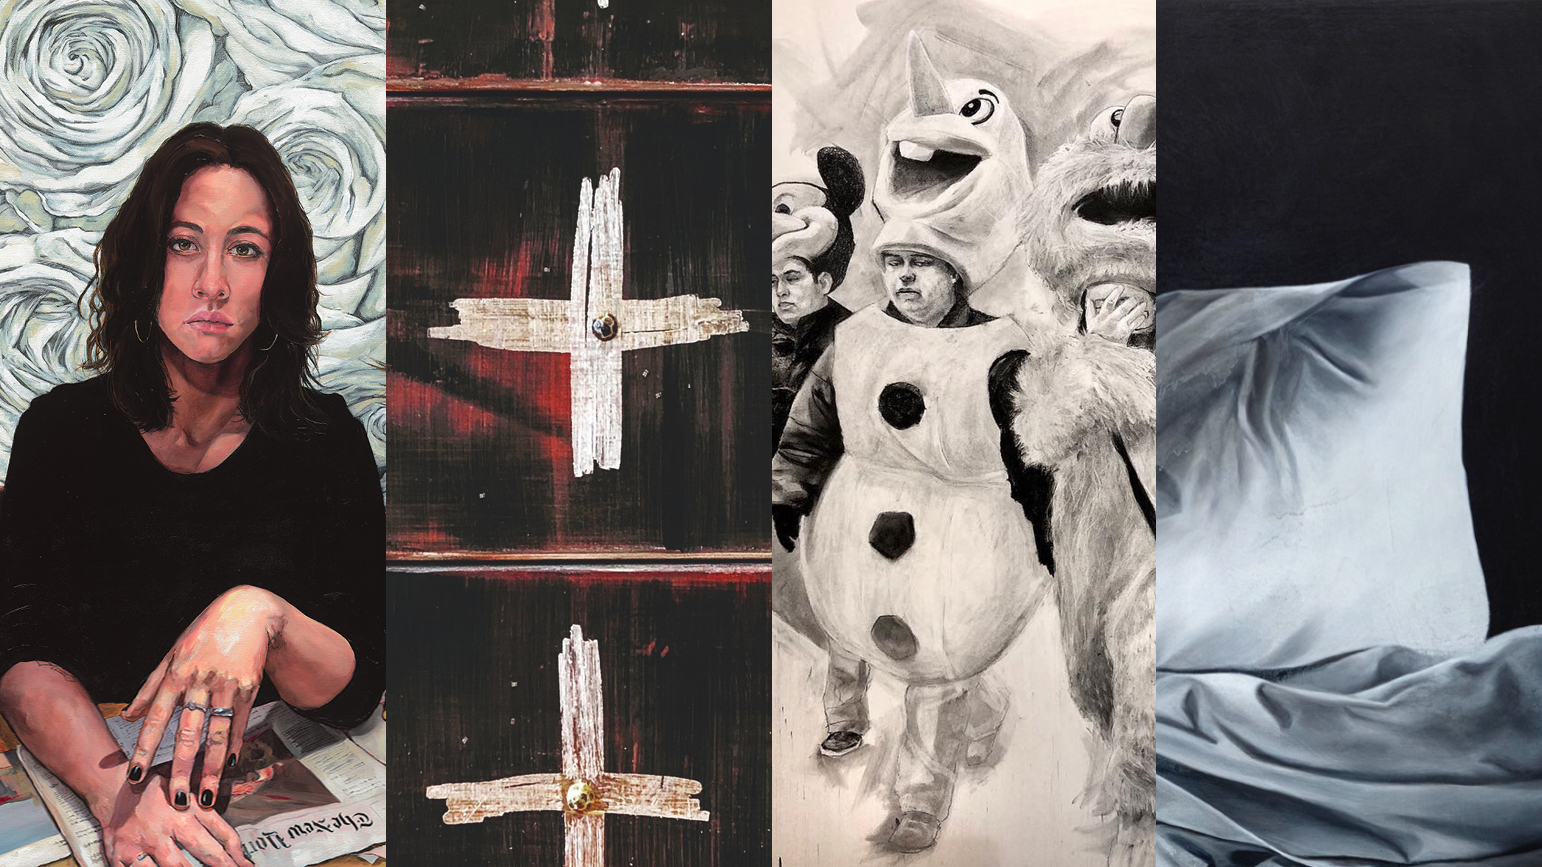 Four images of artwork